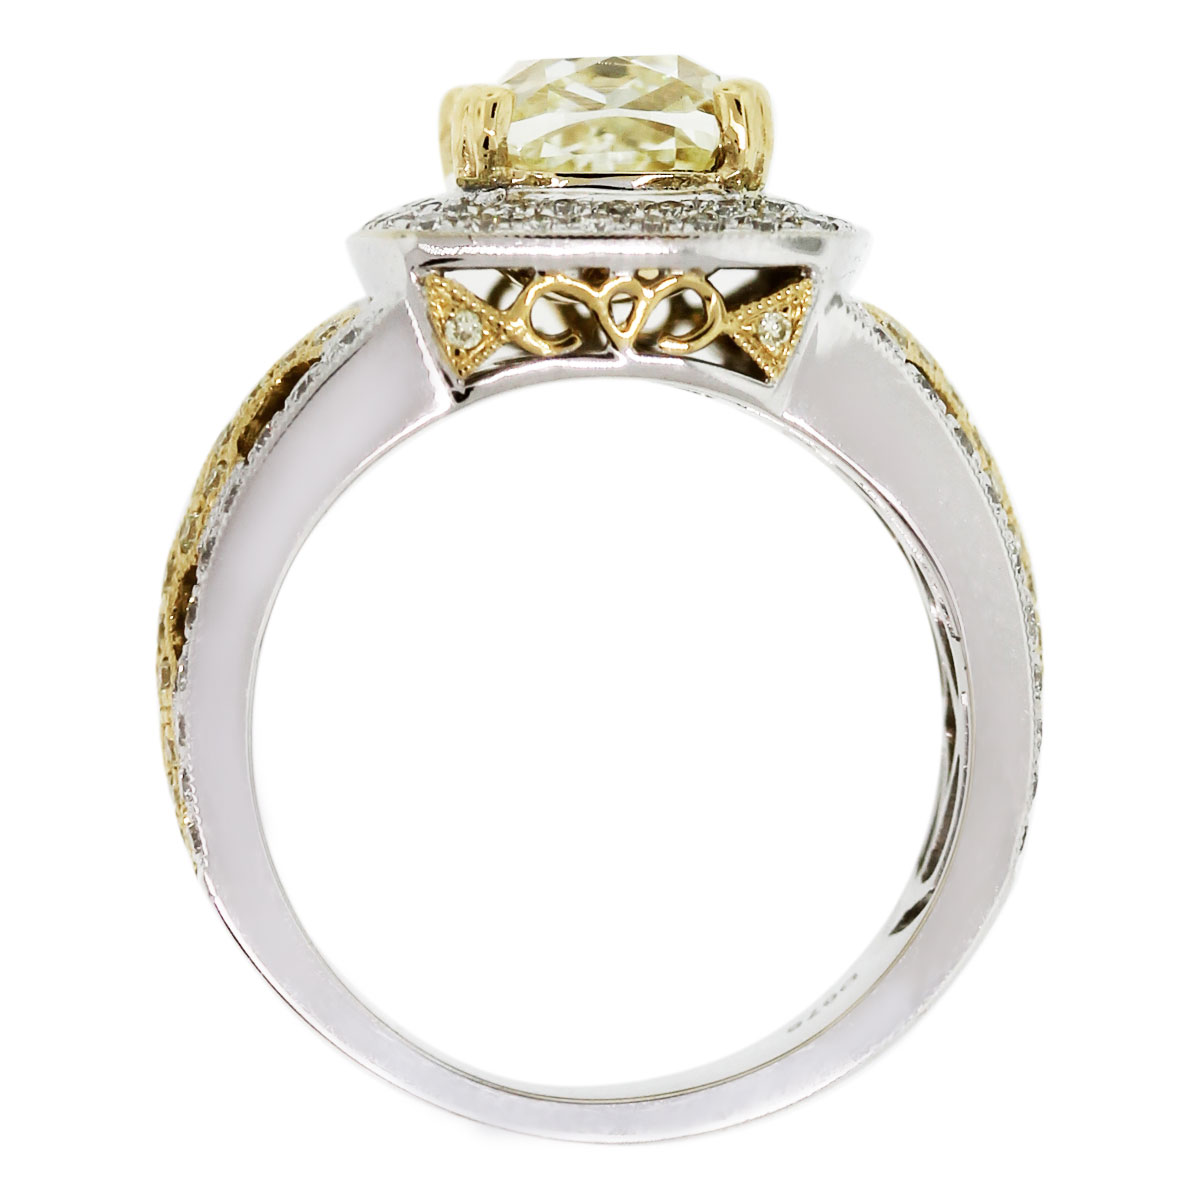 You must see this 18k Two Tone Fancy Yellow Cushion Cut Diamond Engagement Ring